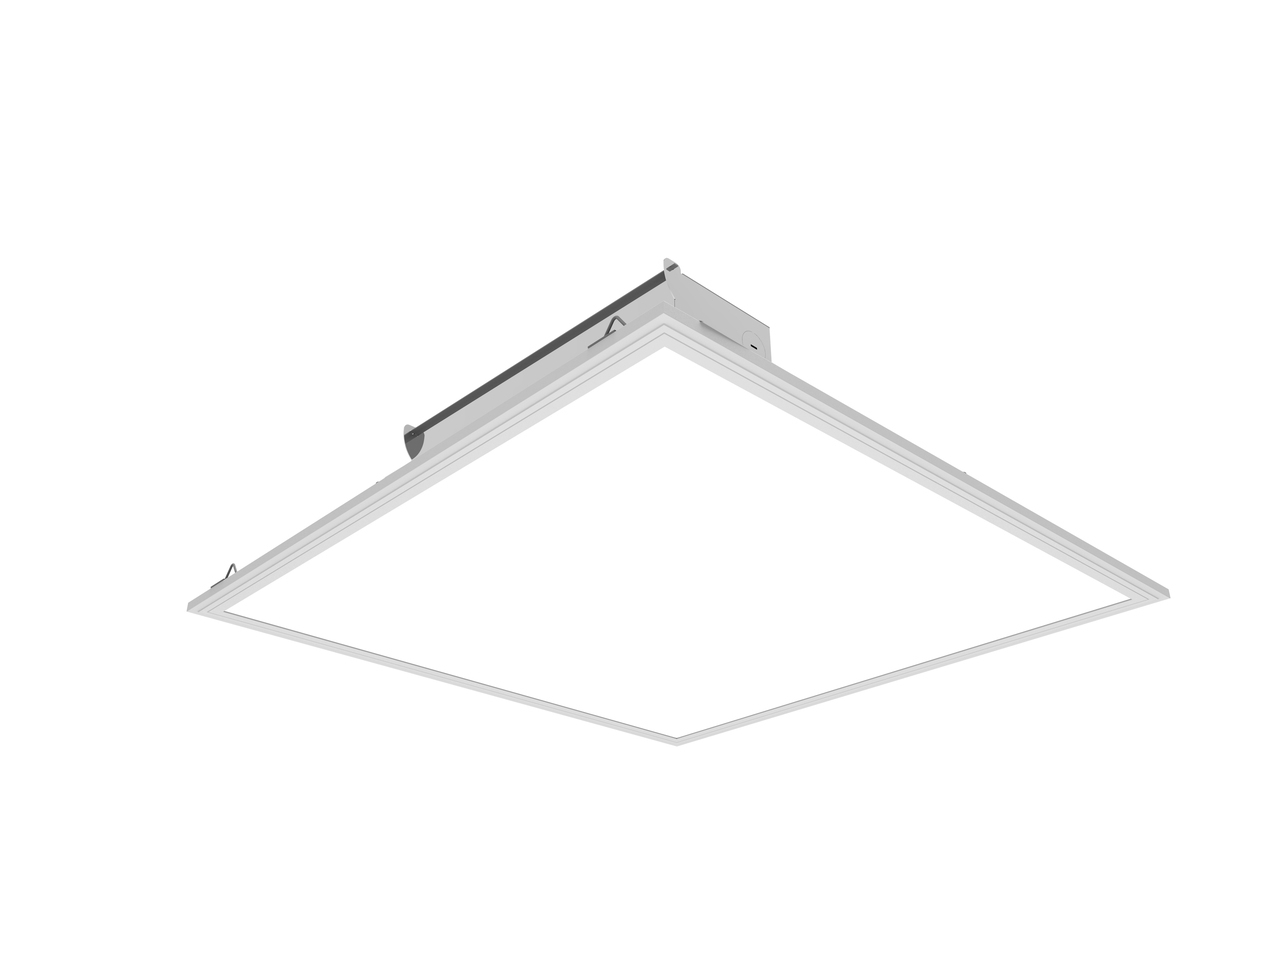 Led Flat Panel 2x2 5000k Daylight Dimmable For Standard Drop Ceilings